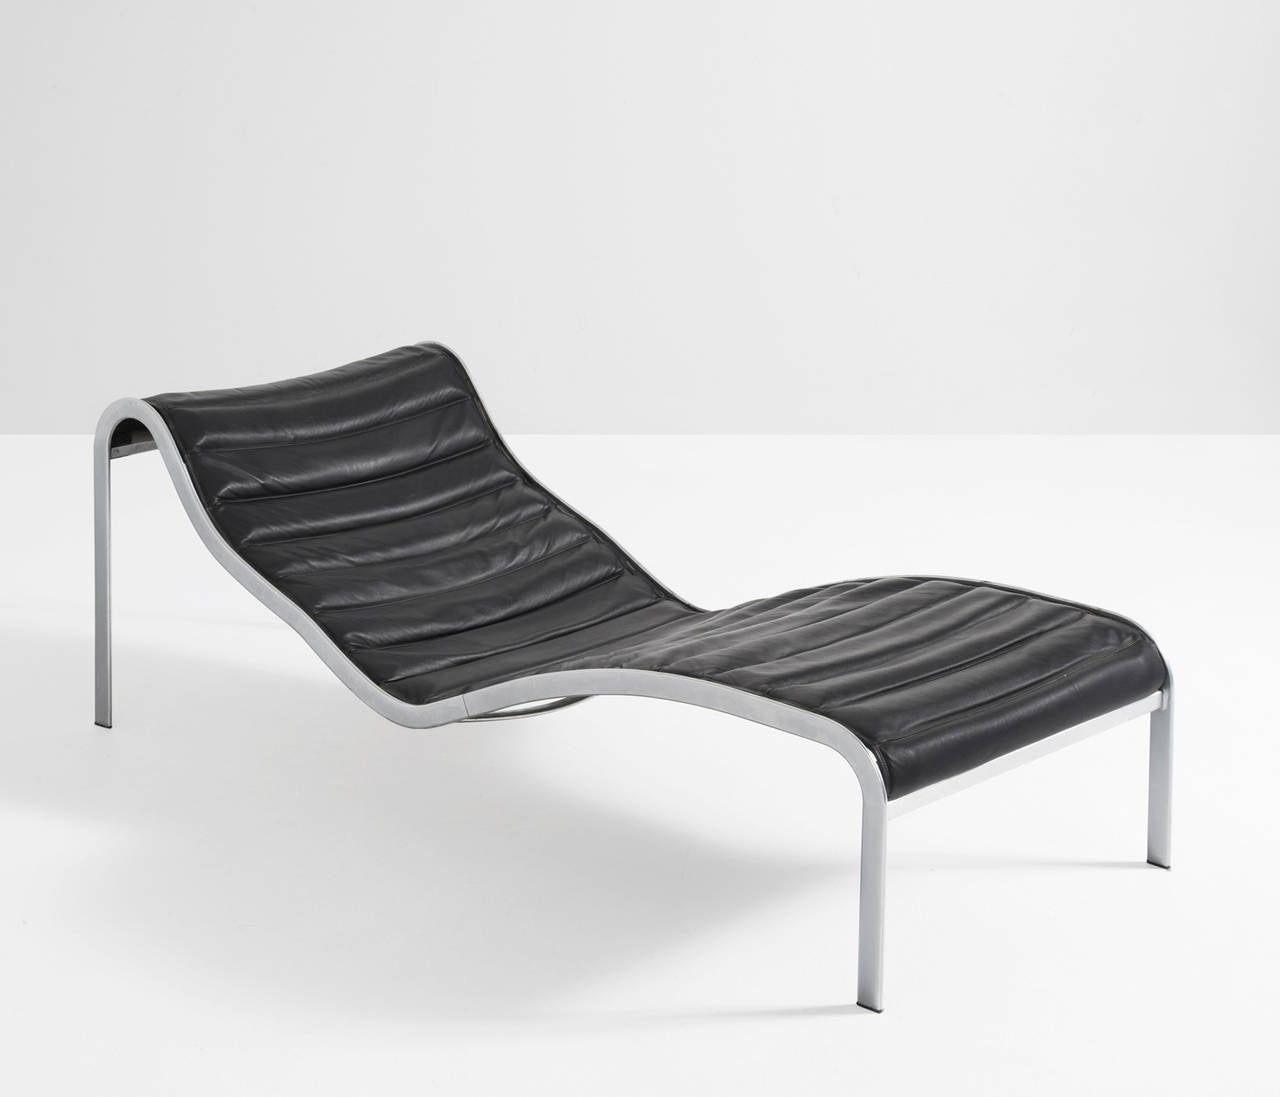 Olivier mourgue 39 whist chaise 39 chaise longue in black for Black leather chaise sale